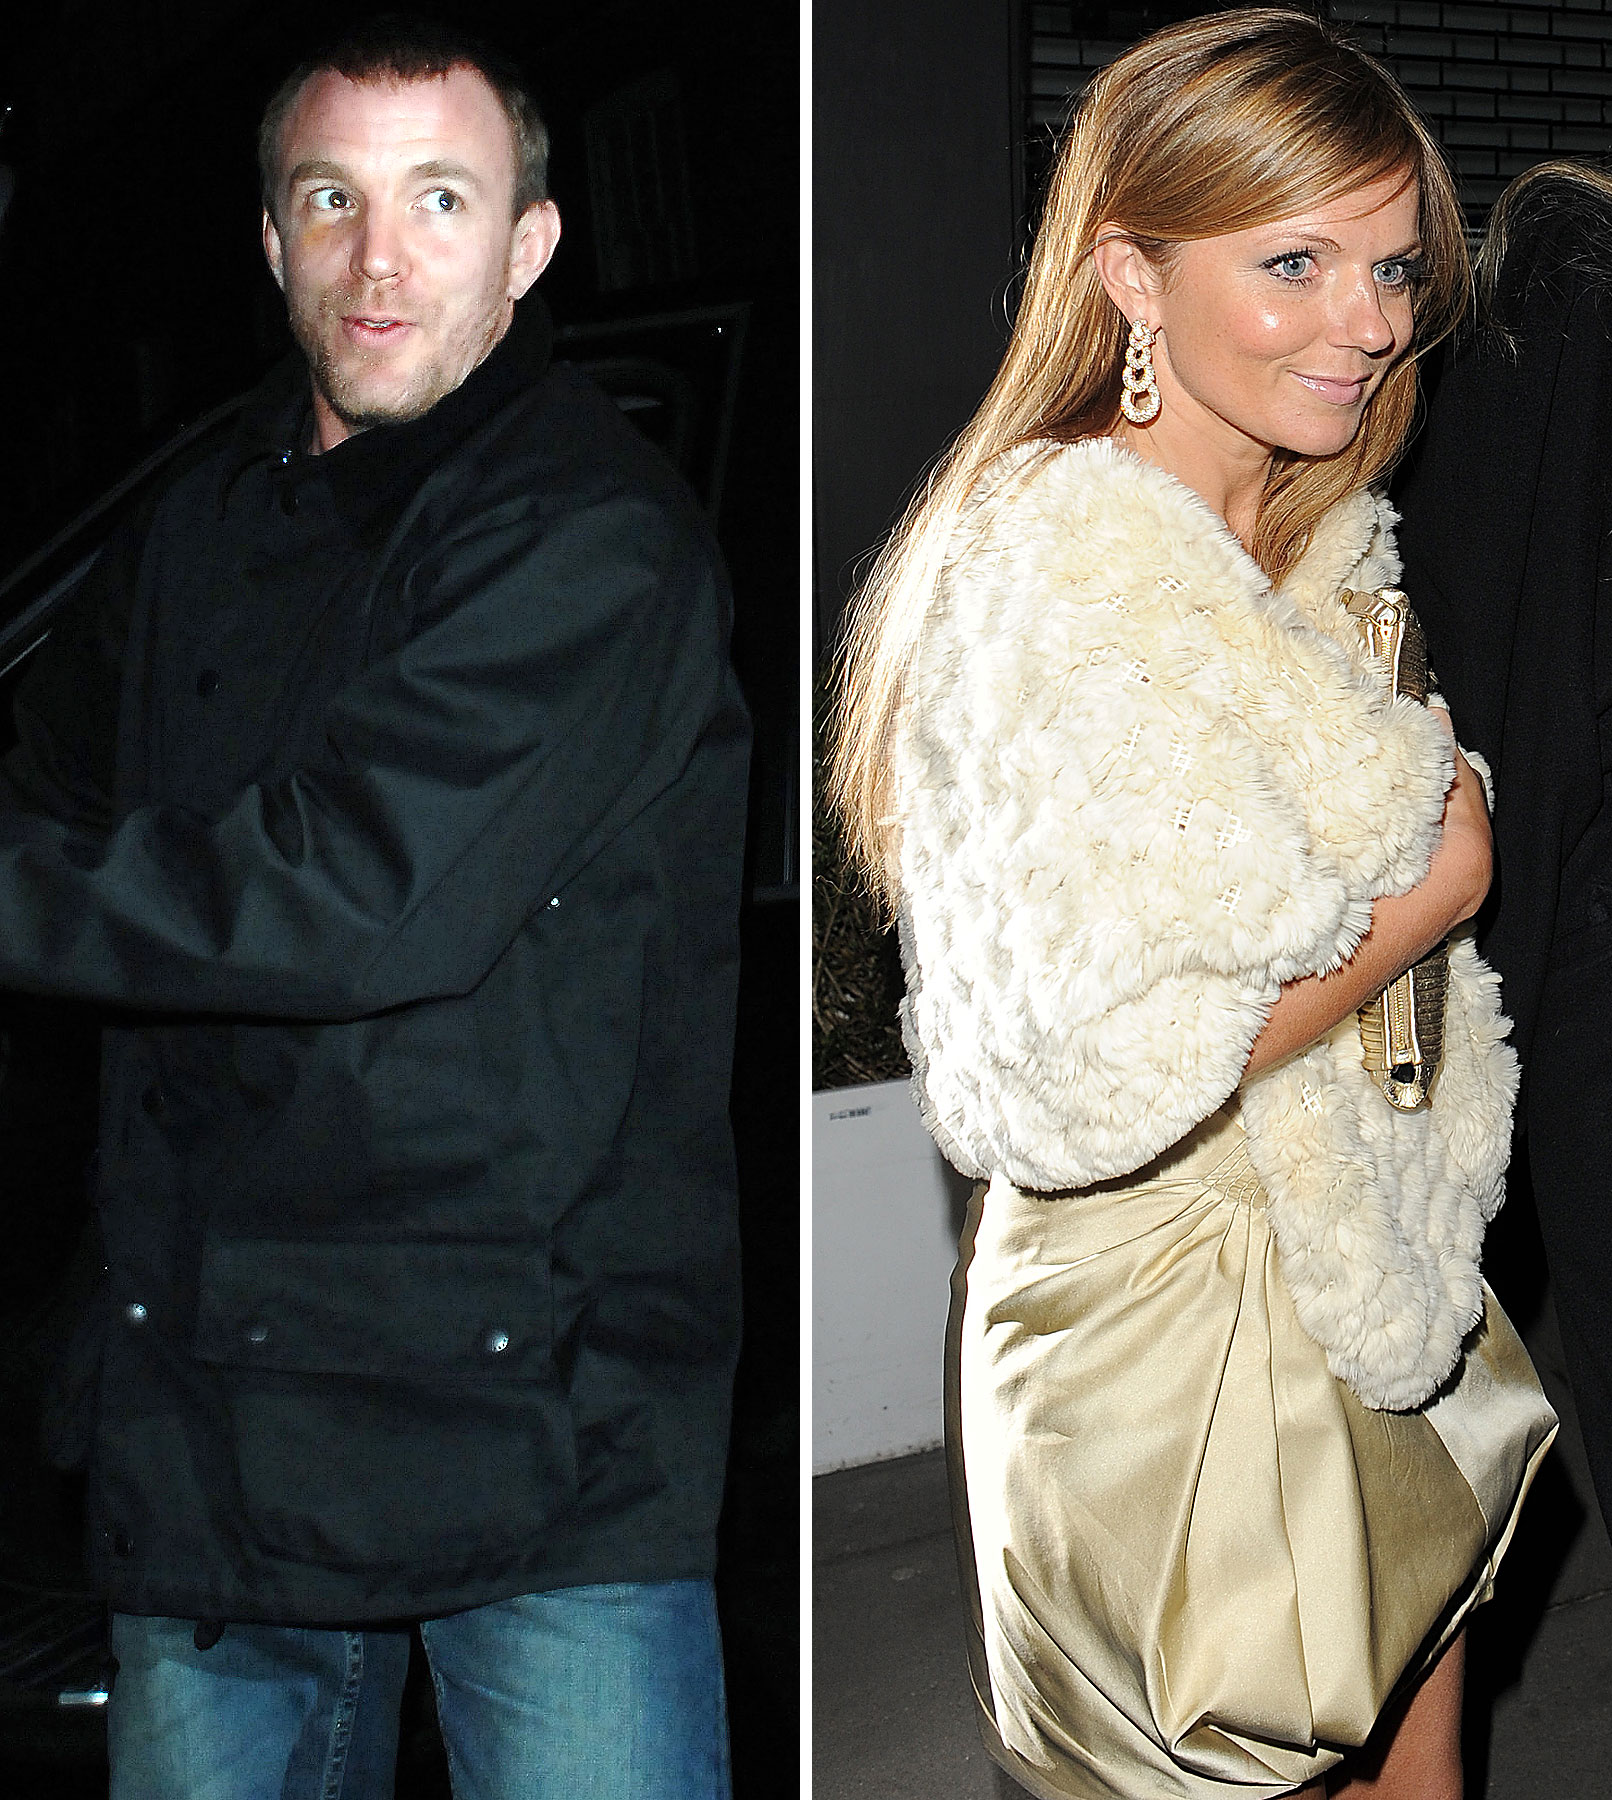 Geri Halliwell and Guy Ritchie